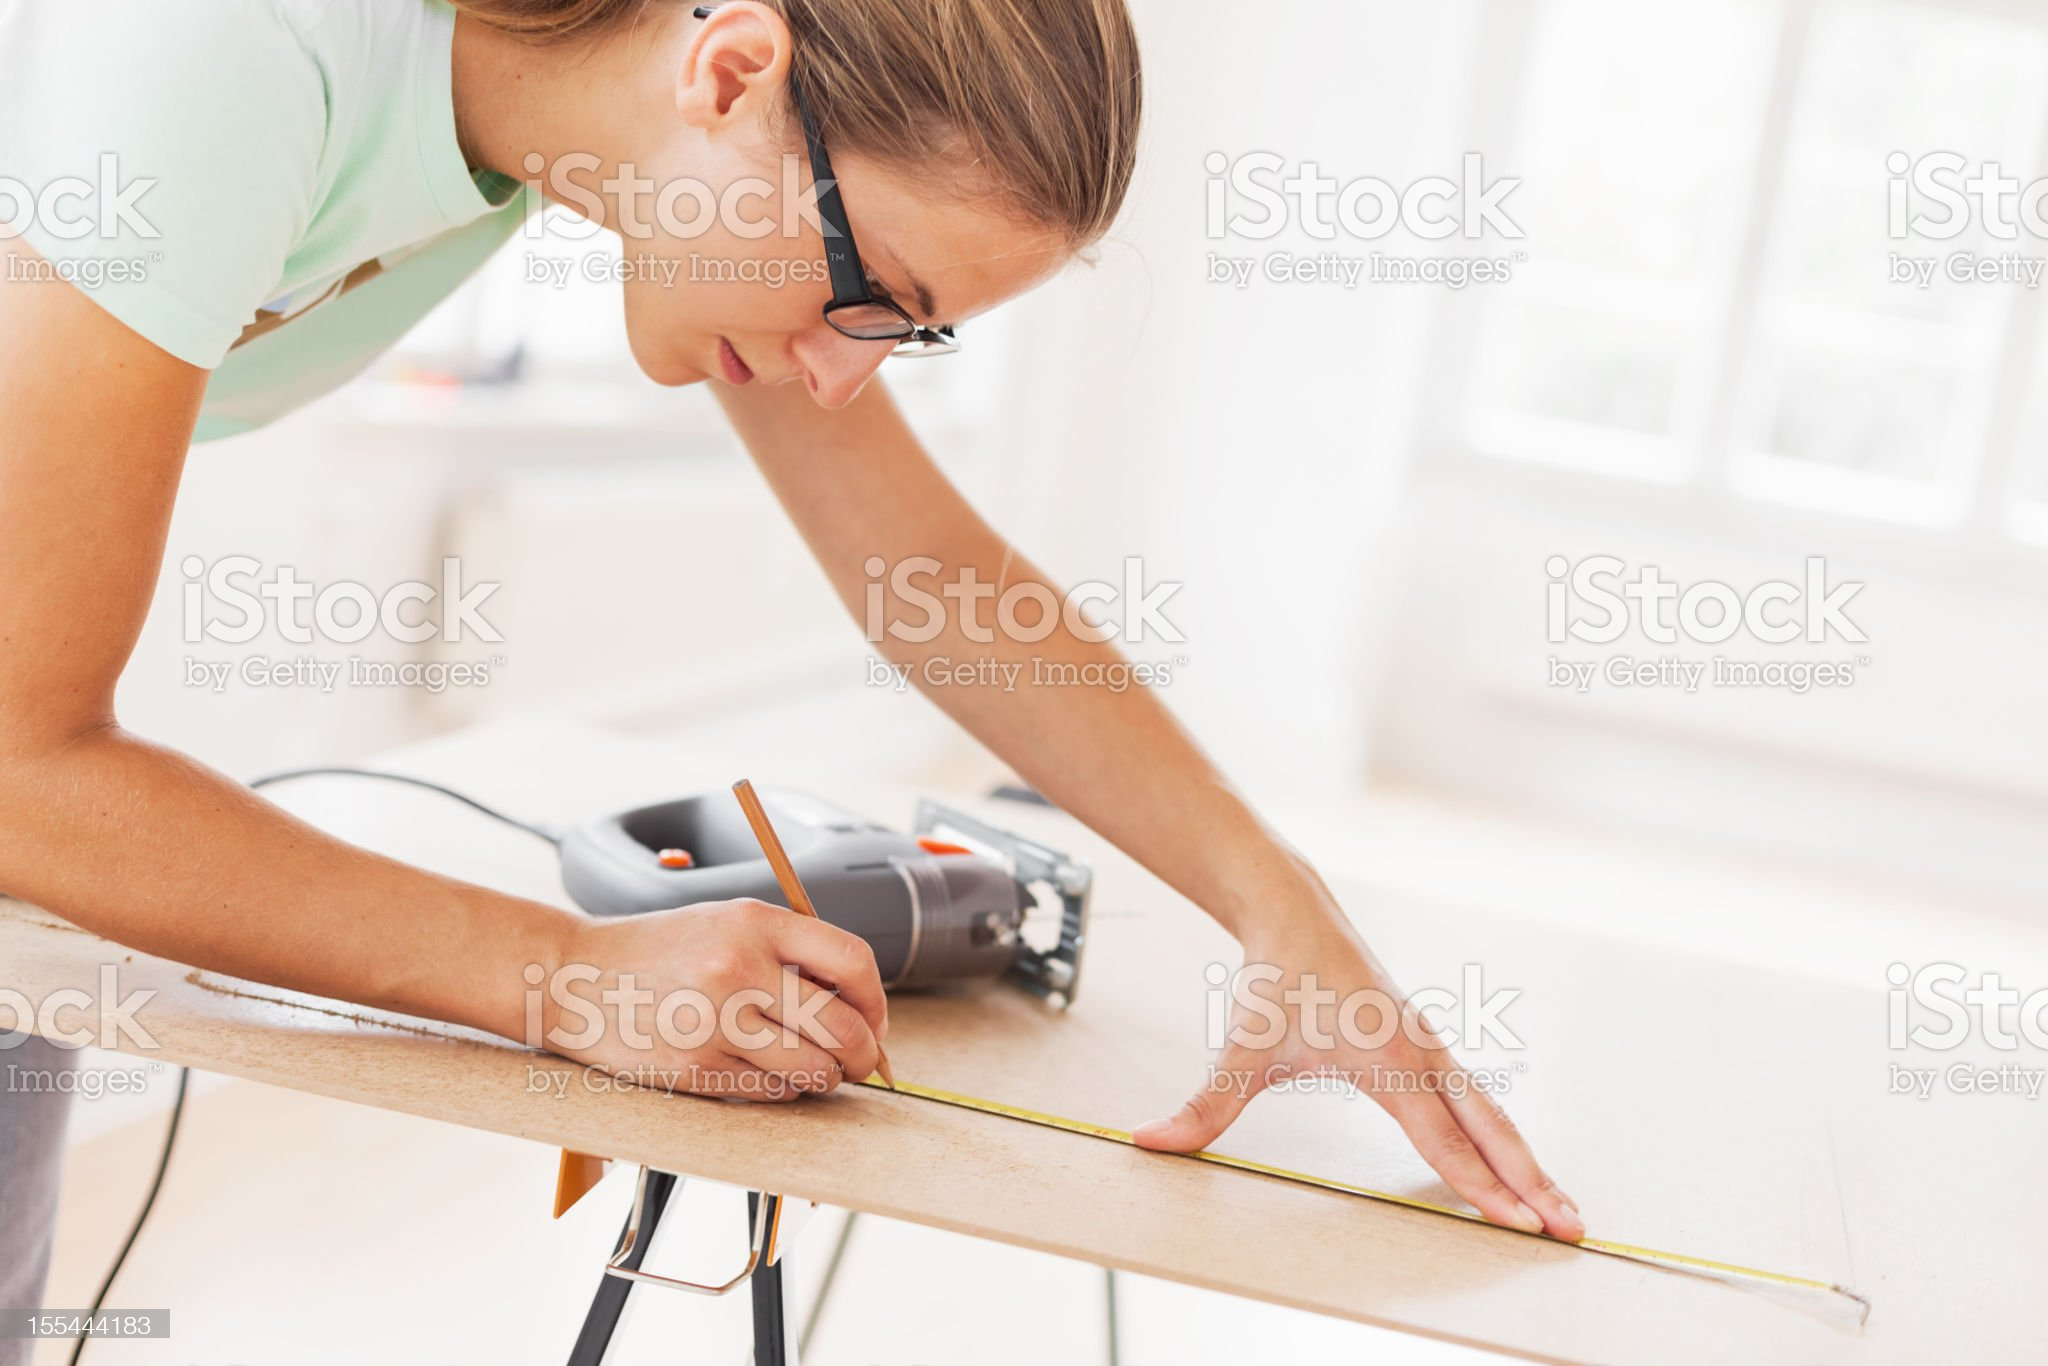 Woman Using Tape Measure royalty-free stock photo